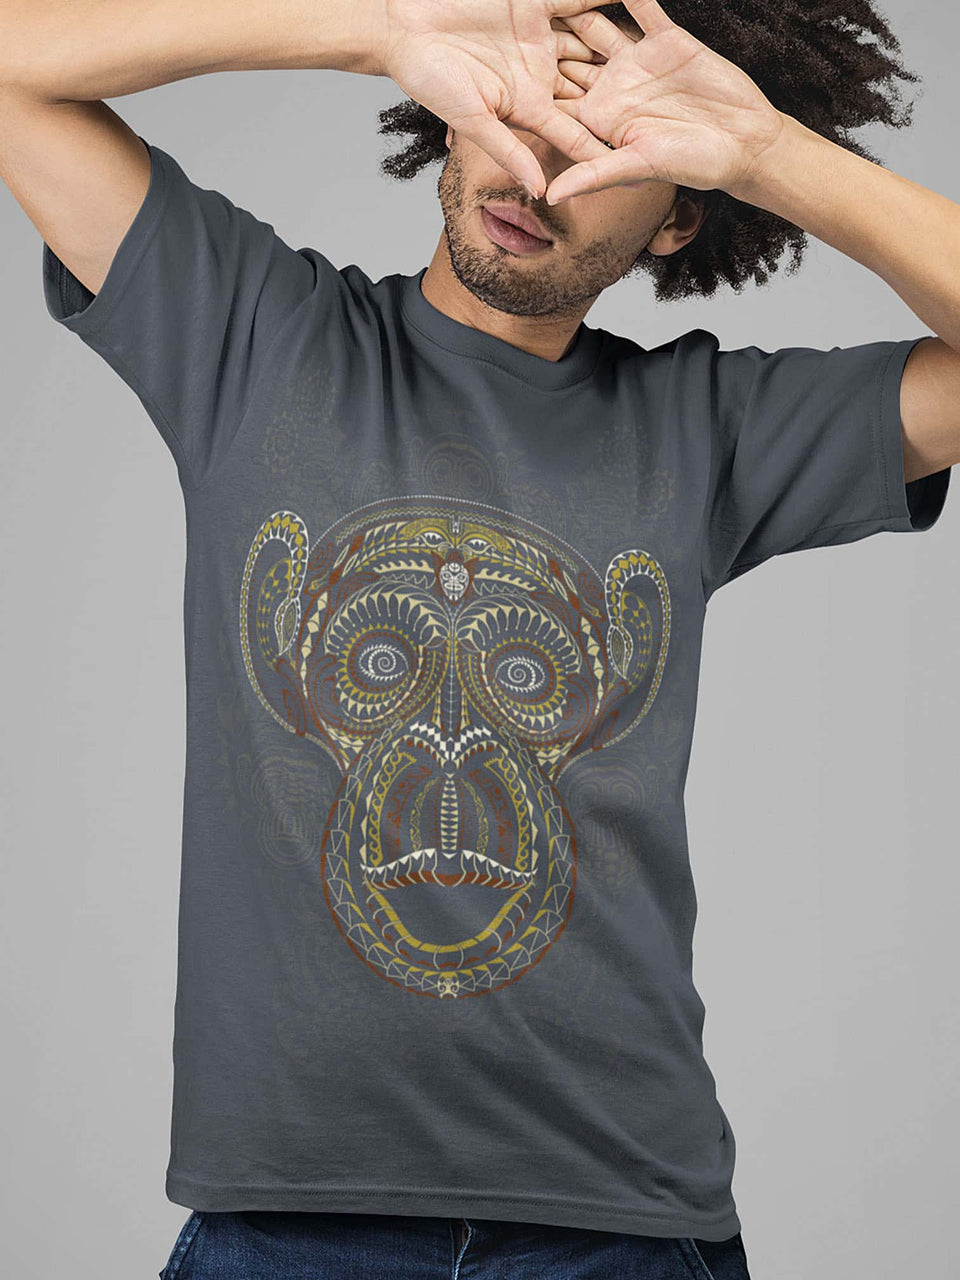 Ta Wise Monkeys  Made To Order Men T-Shirt - Light Charcoal